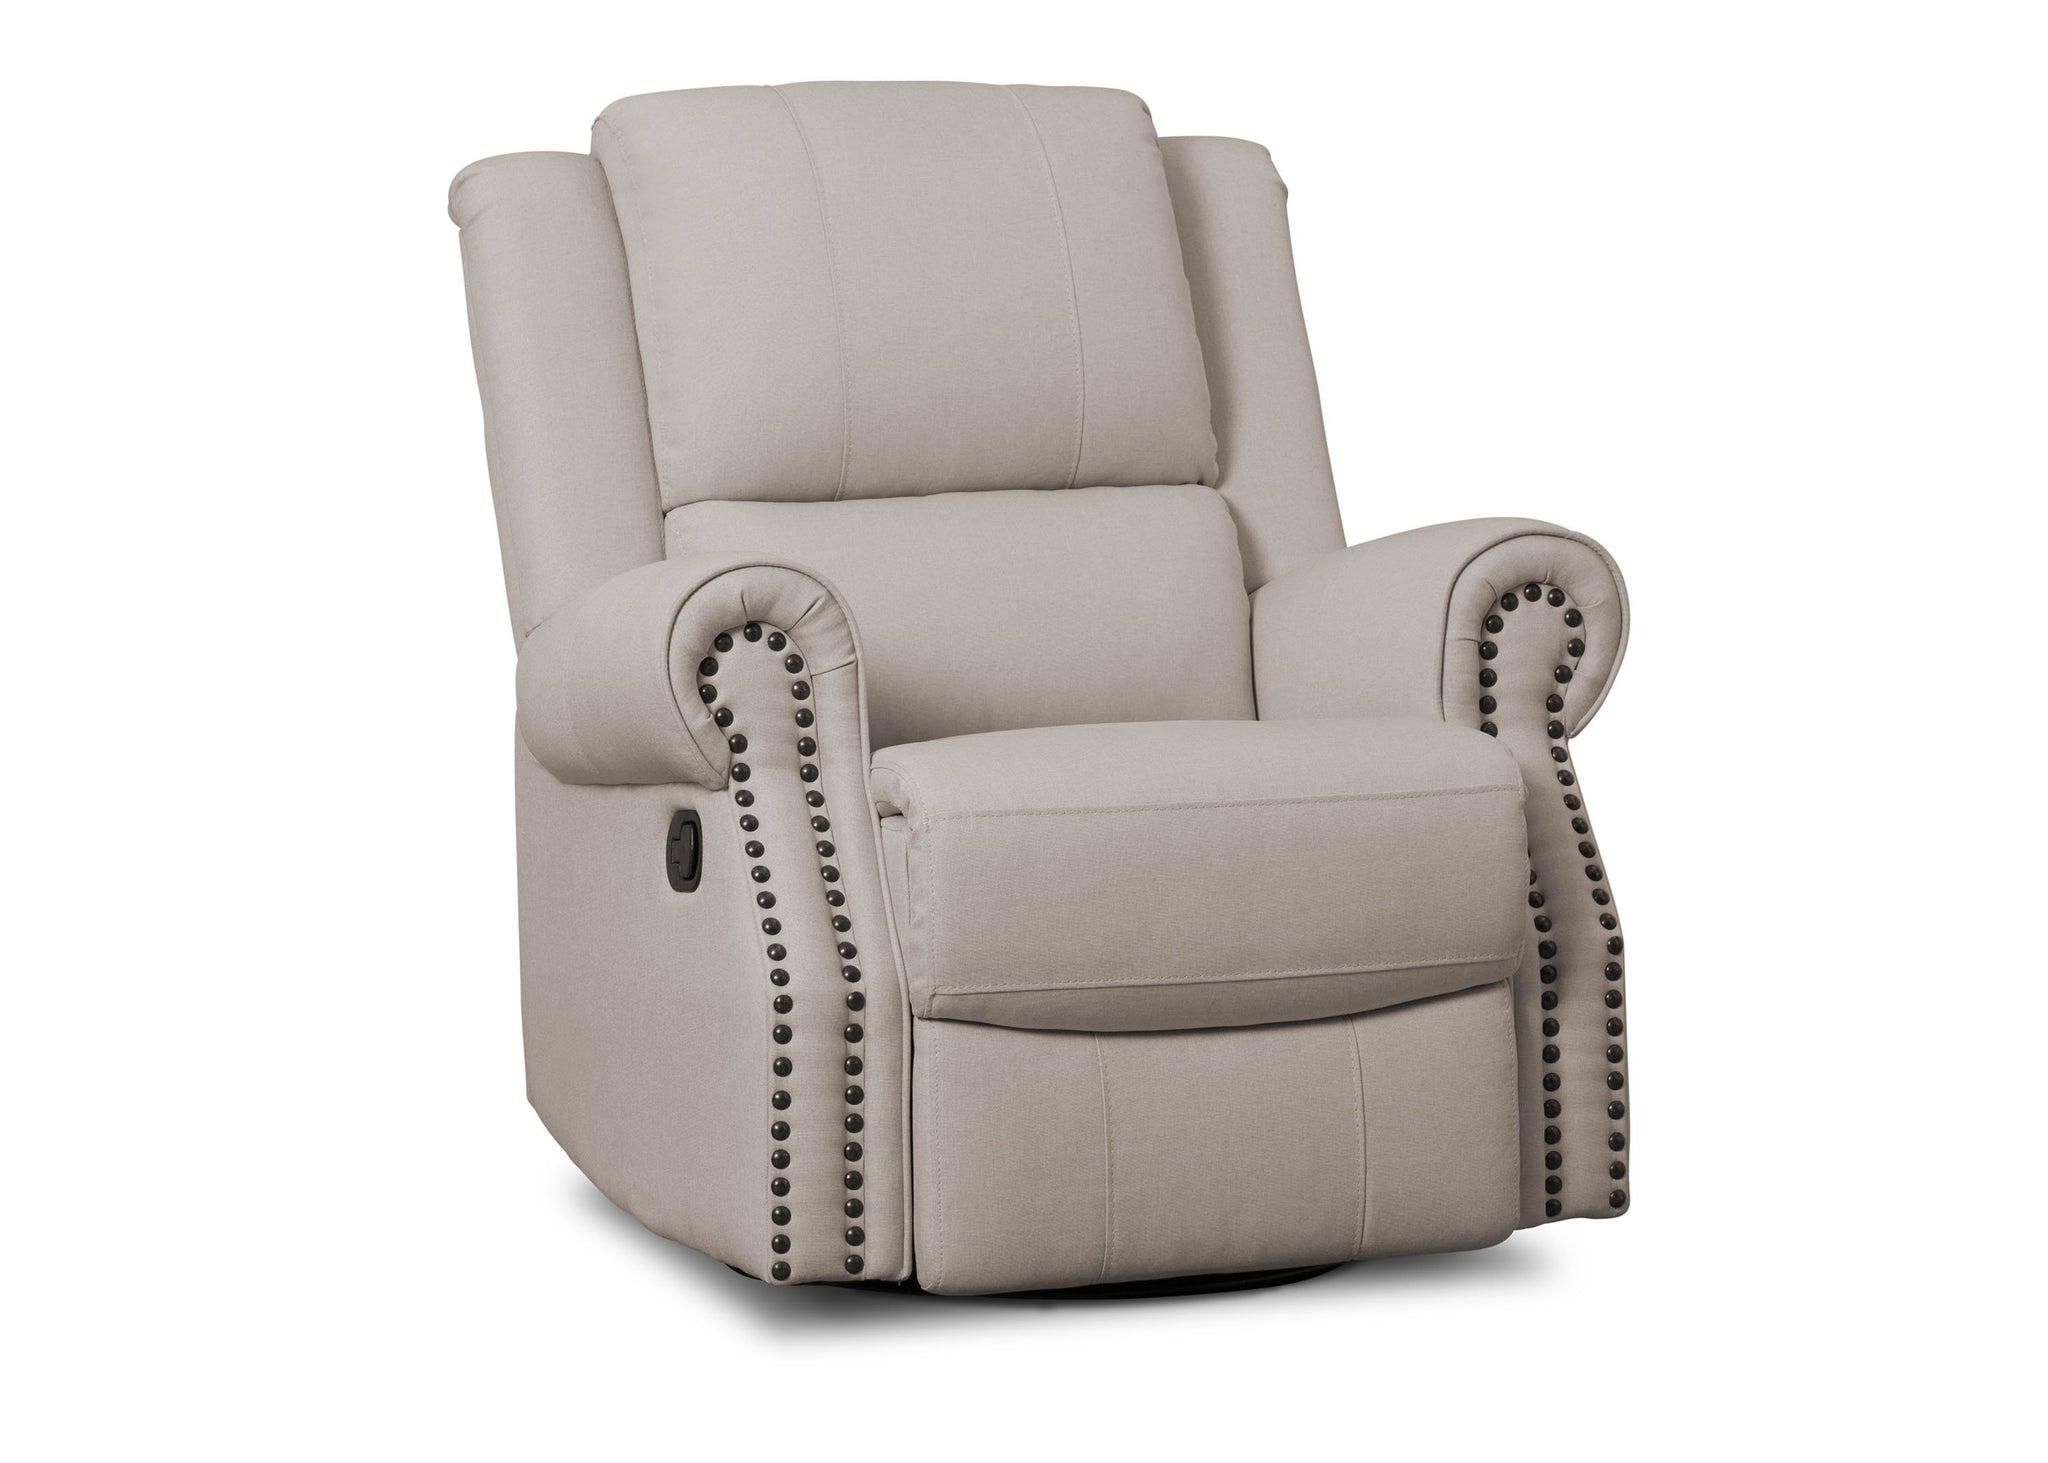 Delta Children Flax (710) Dexter Nursery Recliner Swivel Glider Chair (W2524310C), Right View, b2b